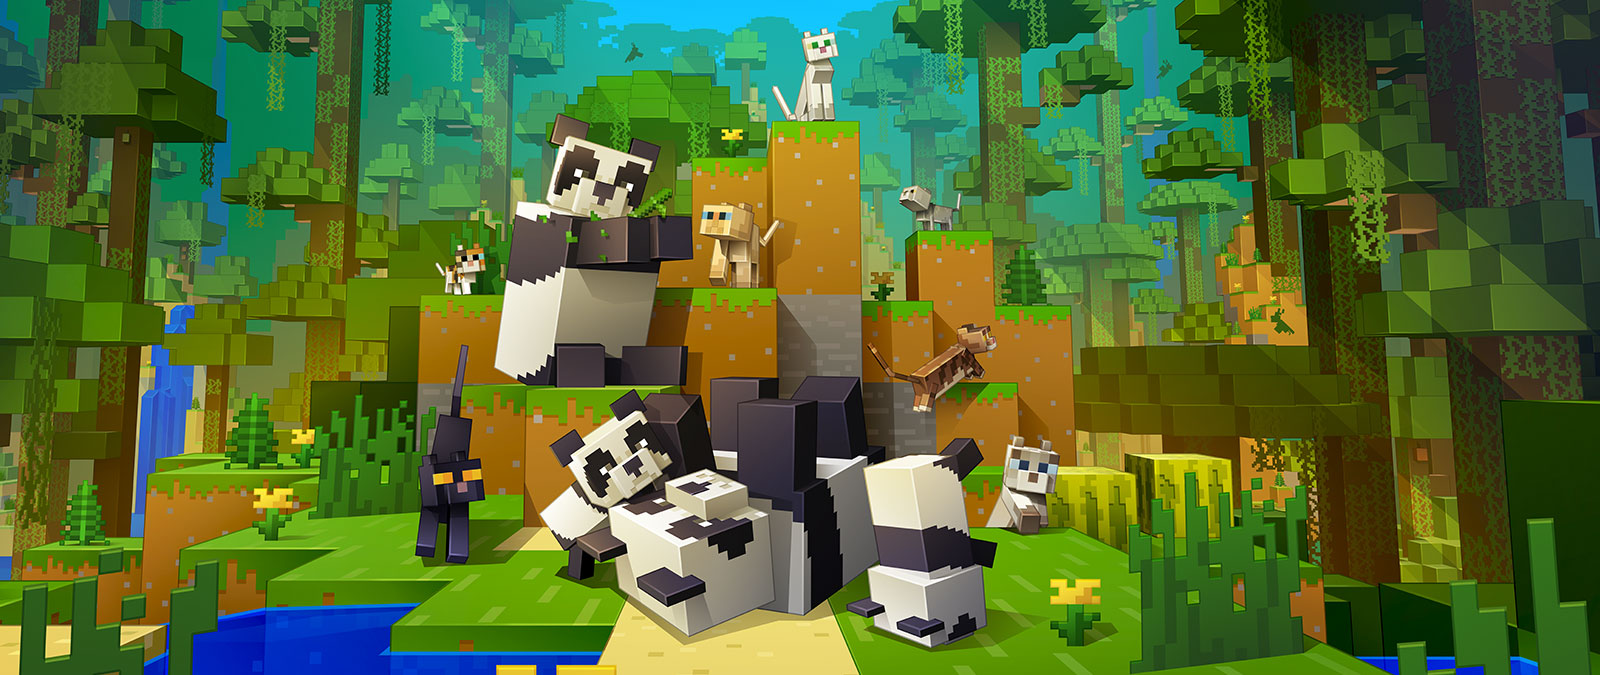 Image of Minecraft cats and pandas playing together